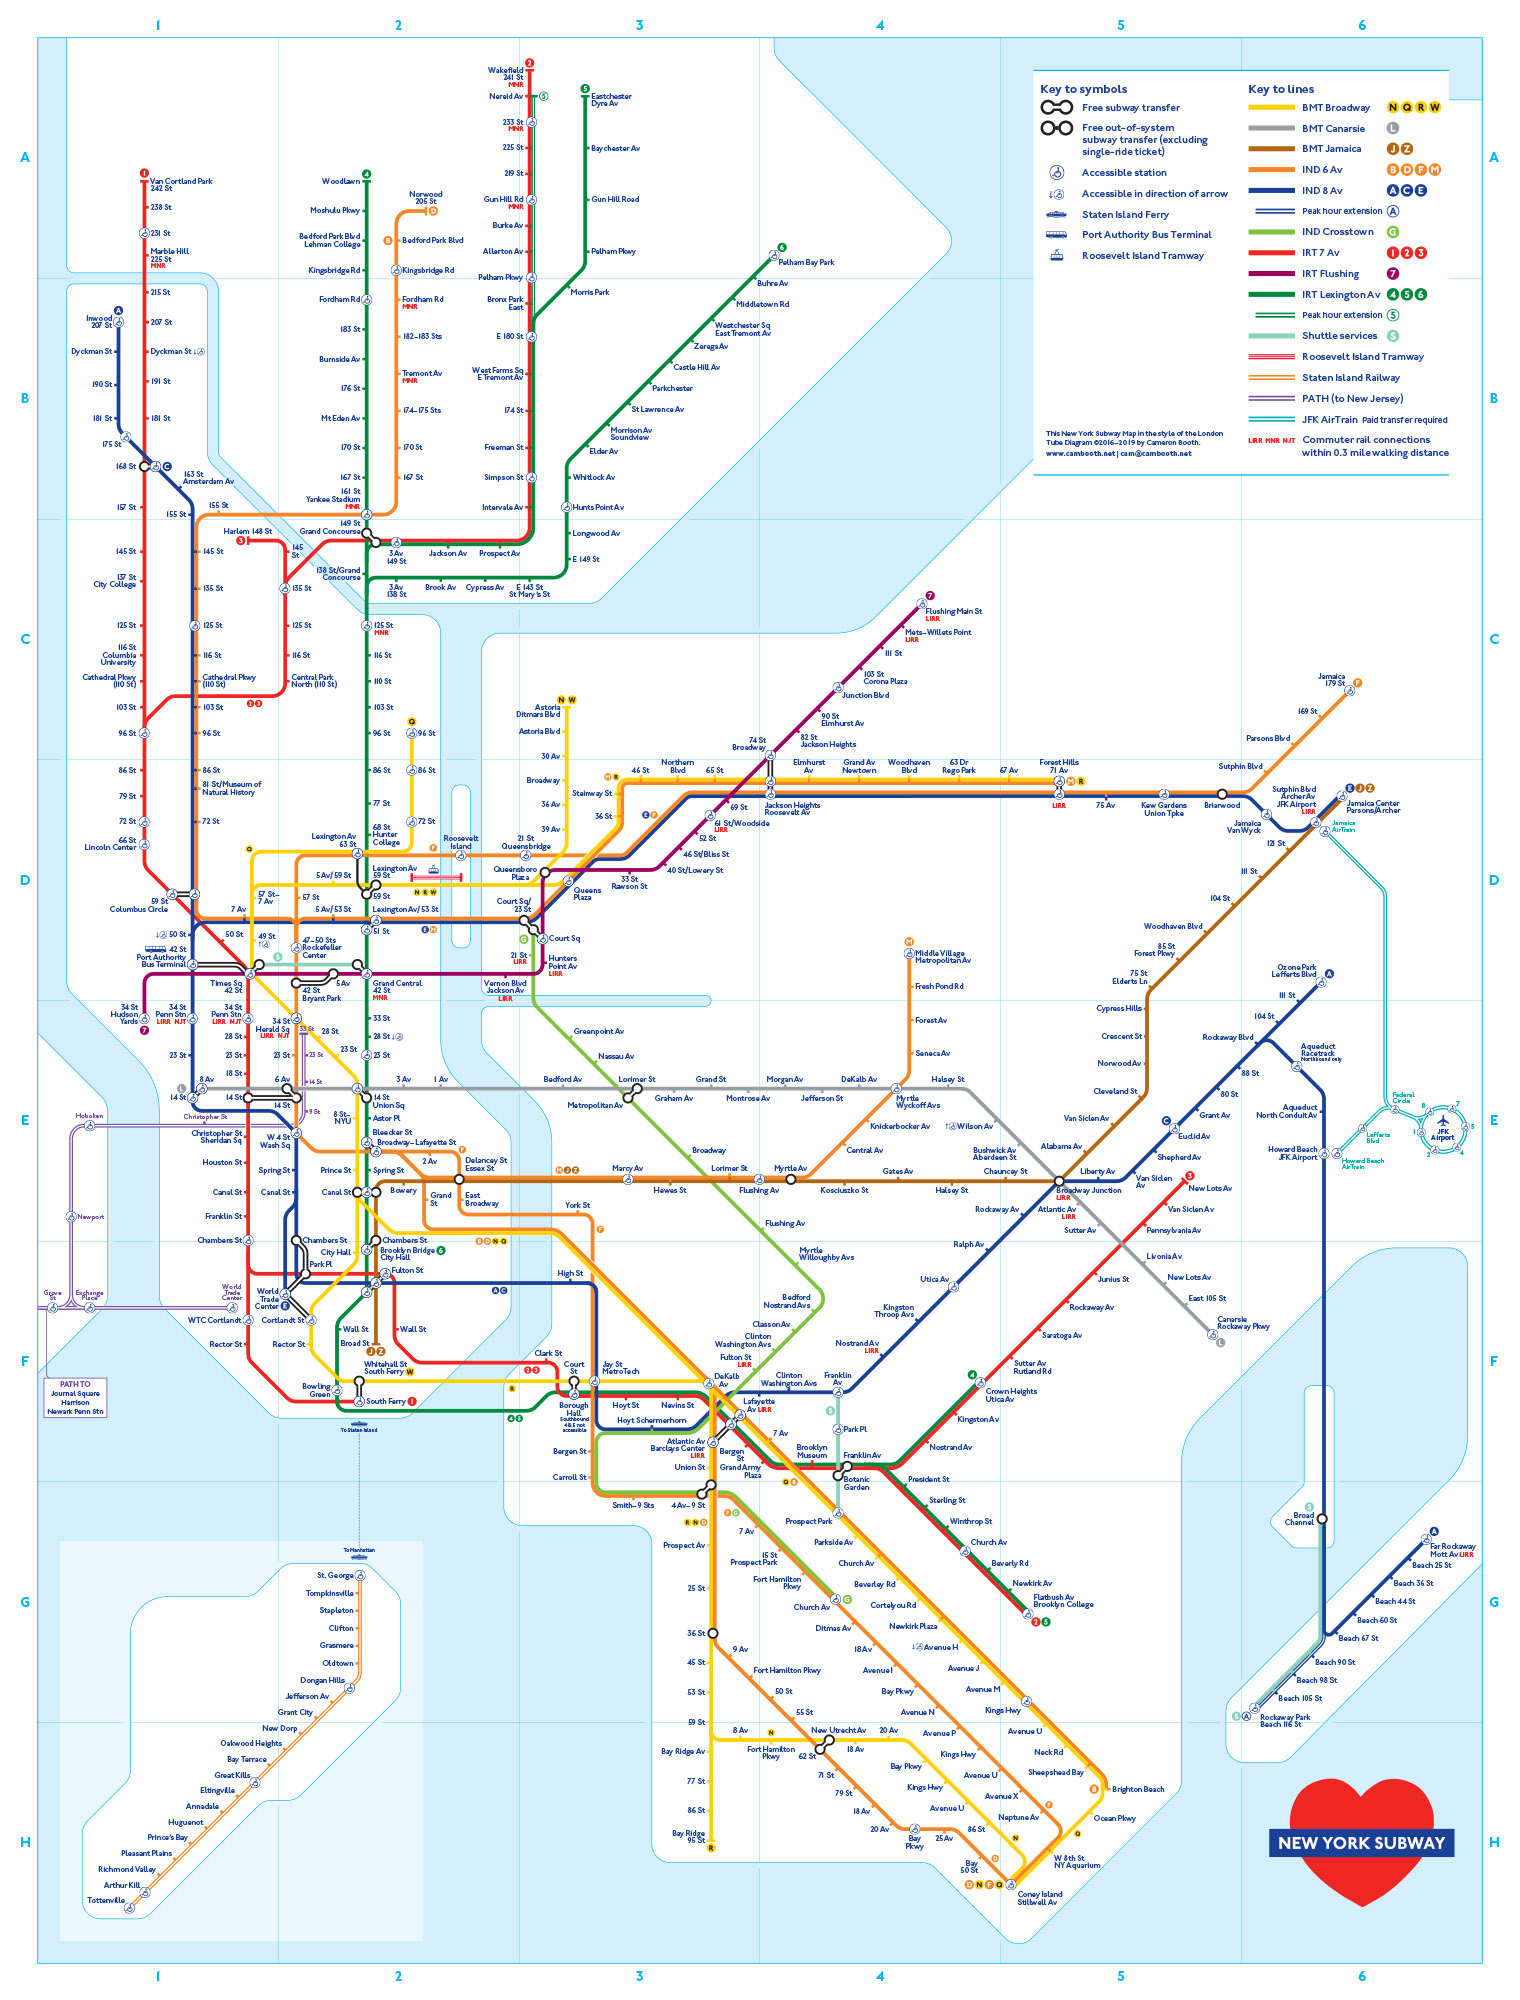 Map Subway London.New York Subway Map In The Style Of The London Underground Map Transit Maps Store